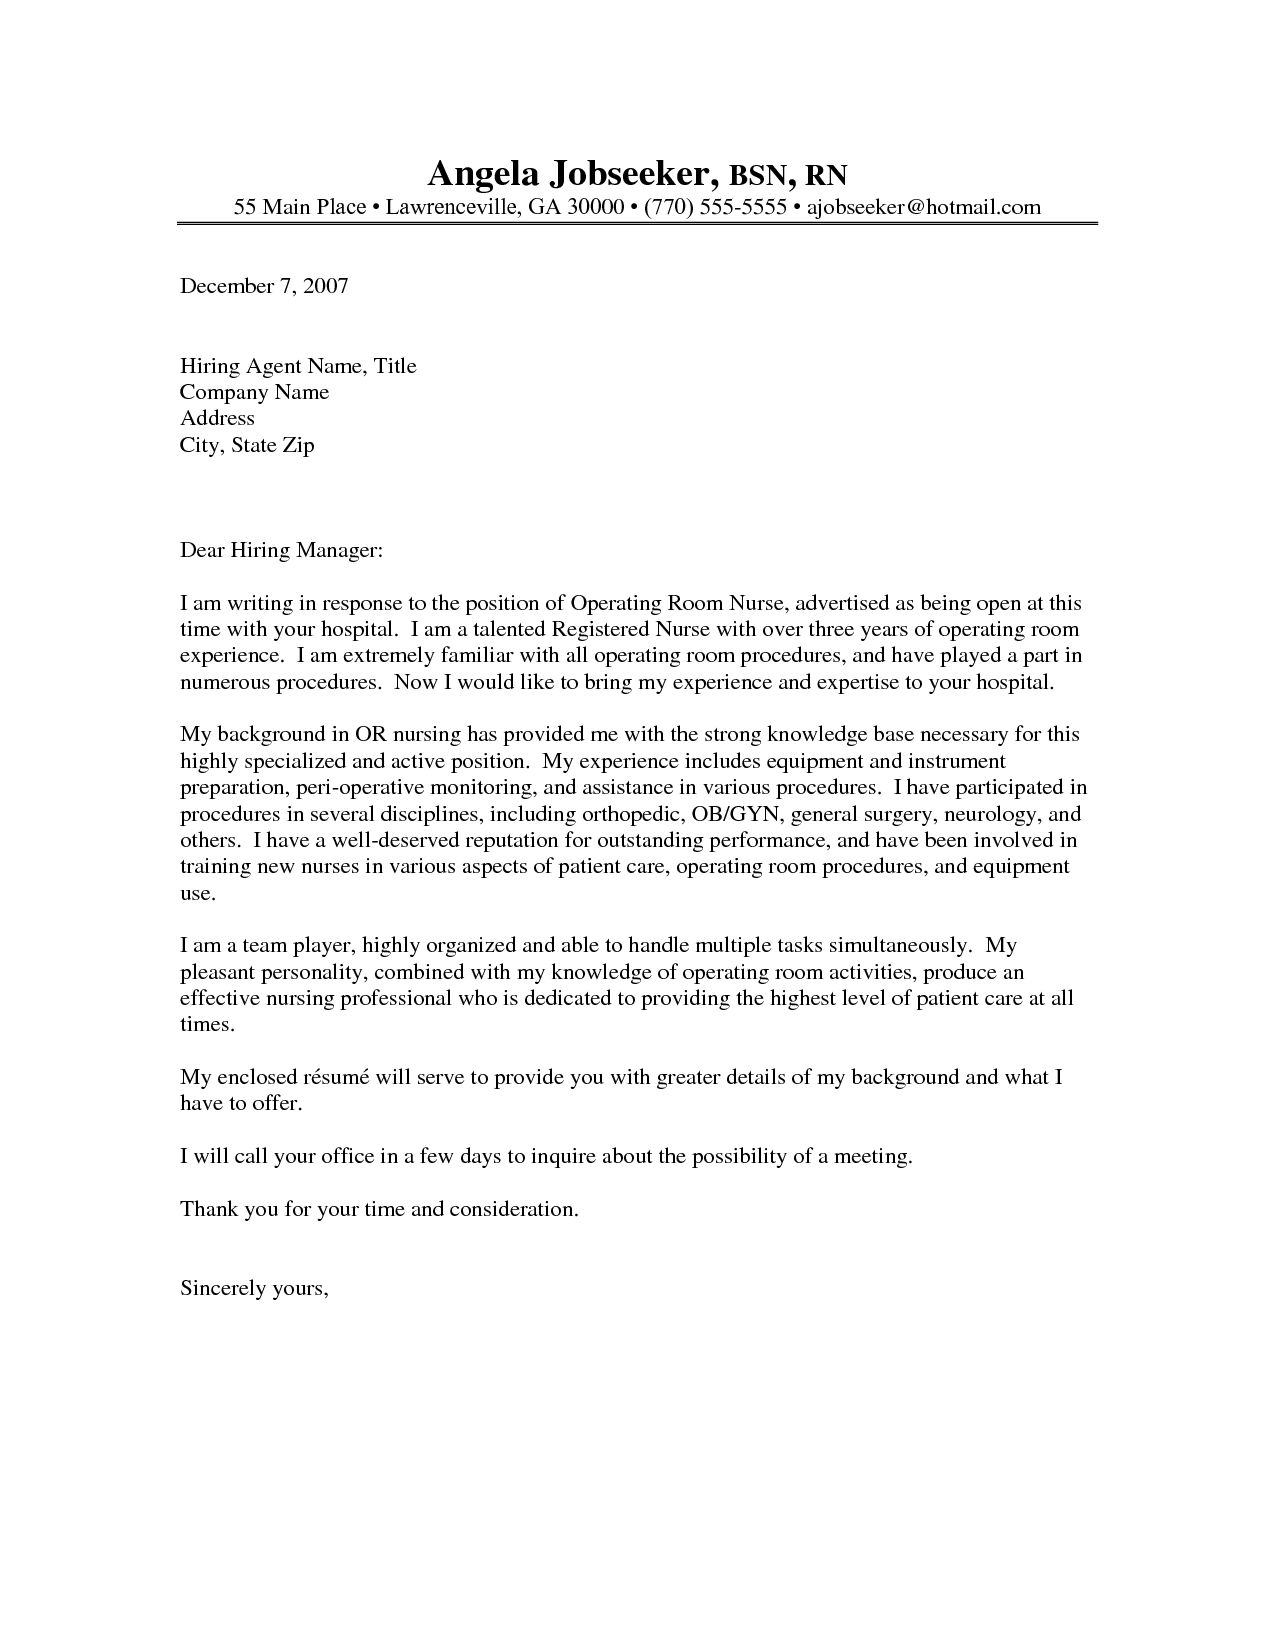 30 Great Cover Letters Resume Cover Letter Examples Cover